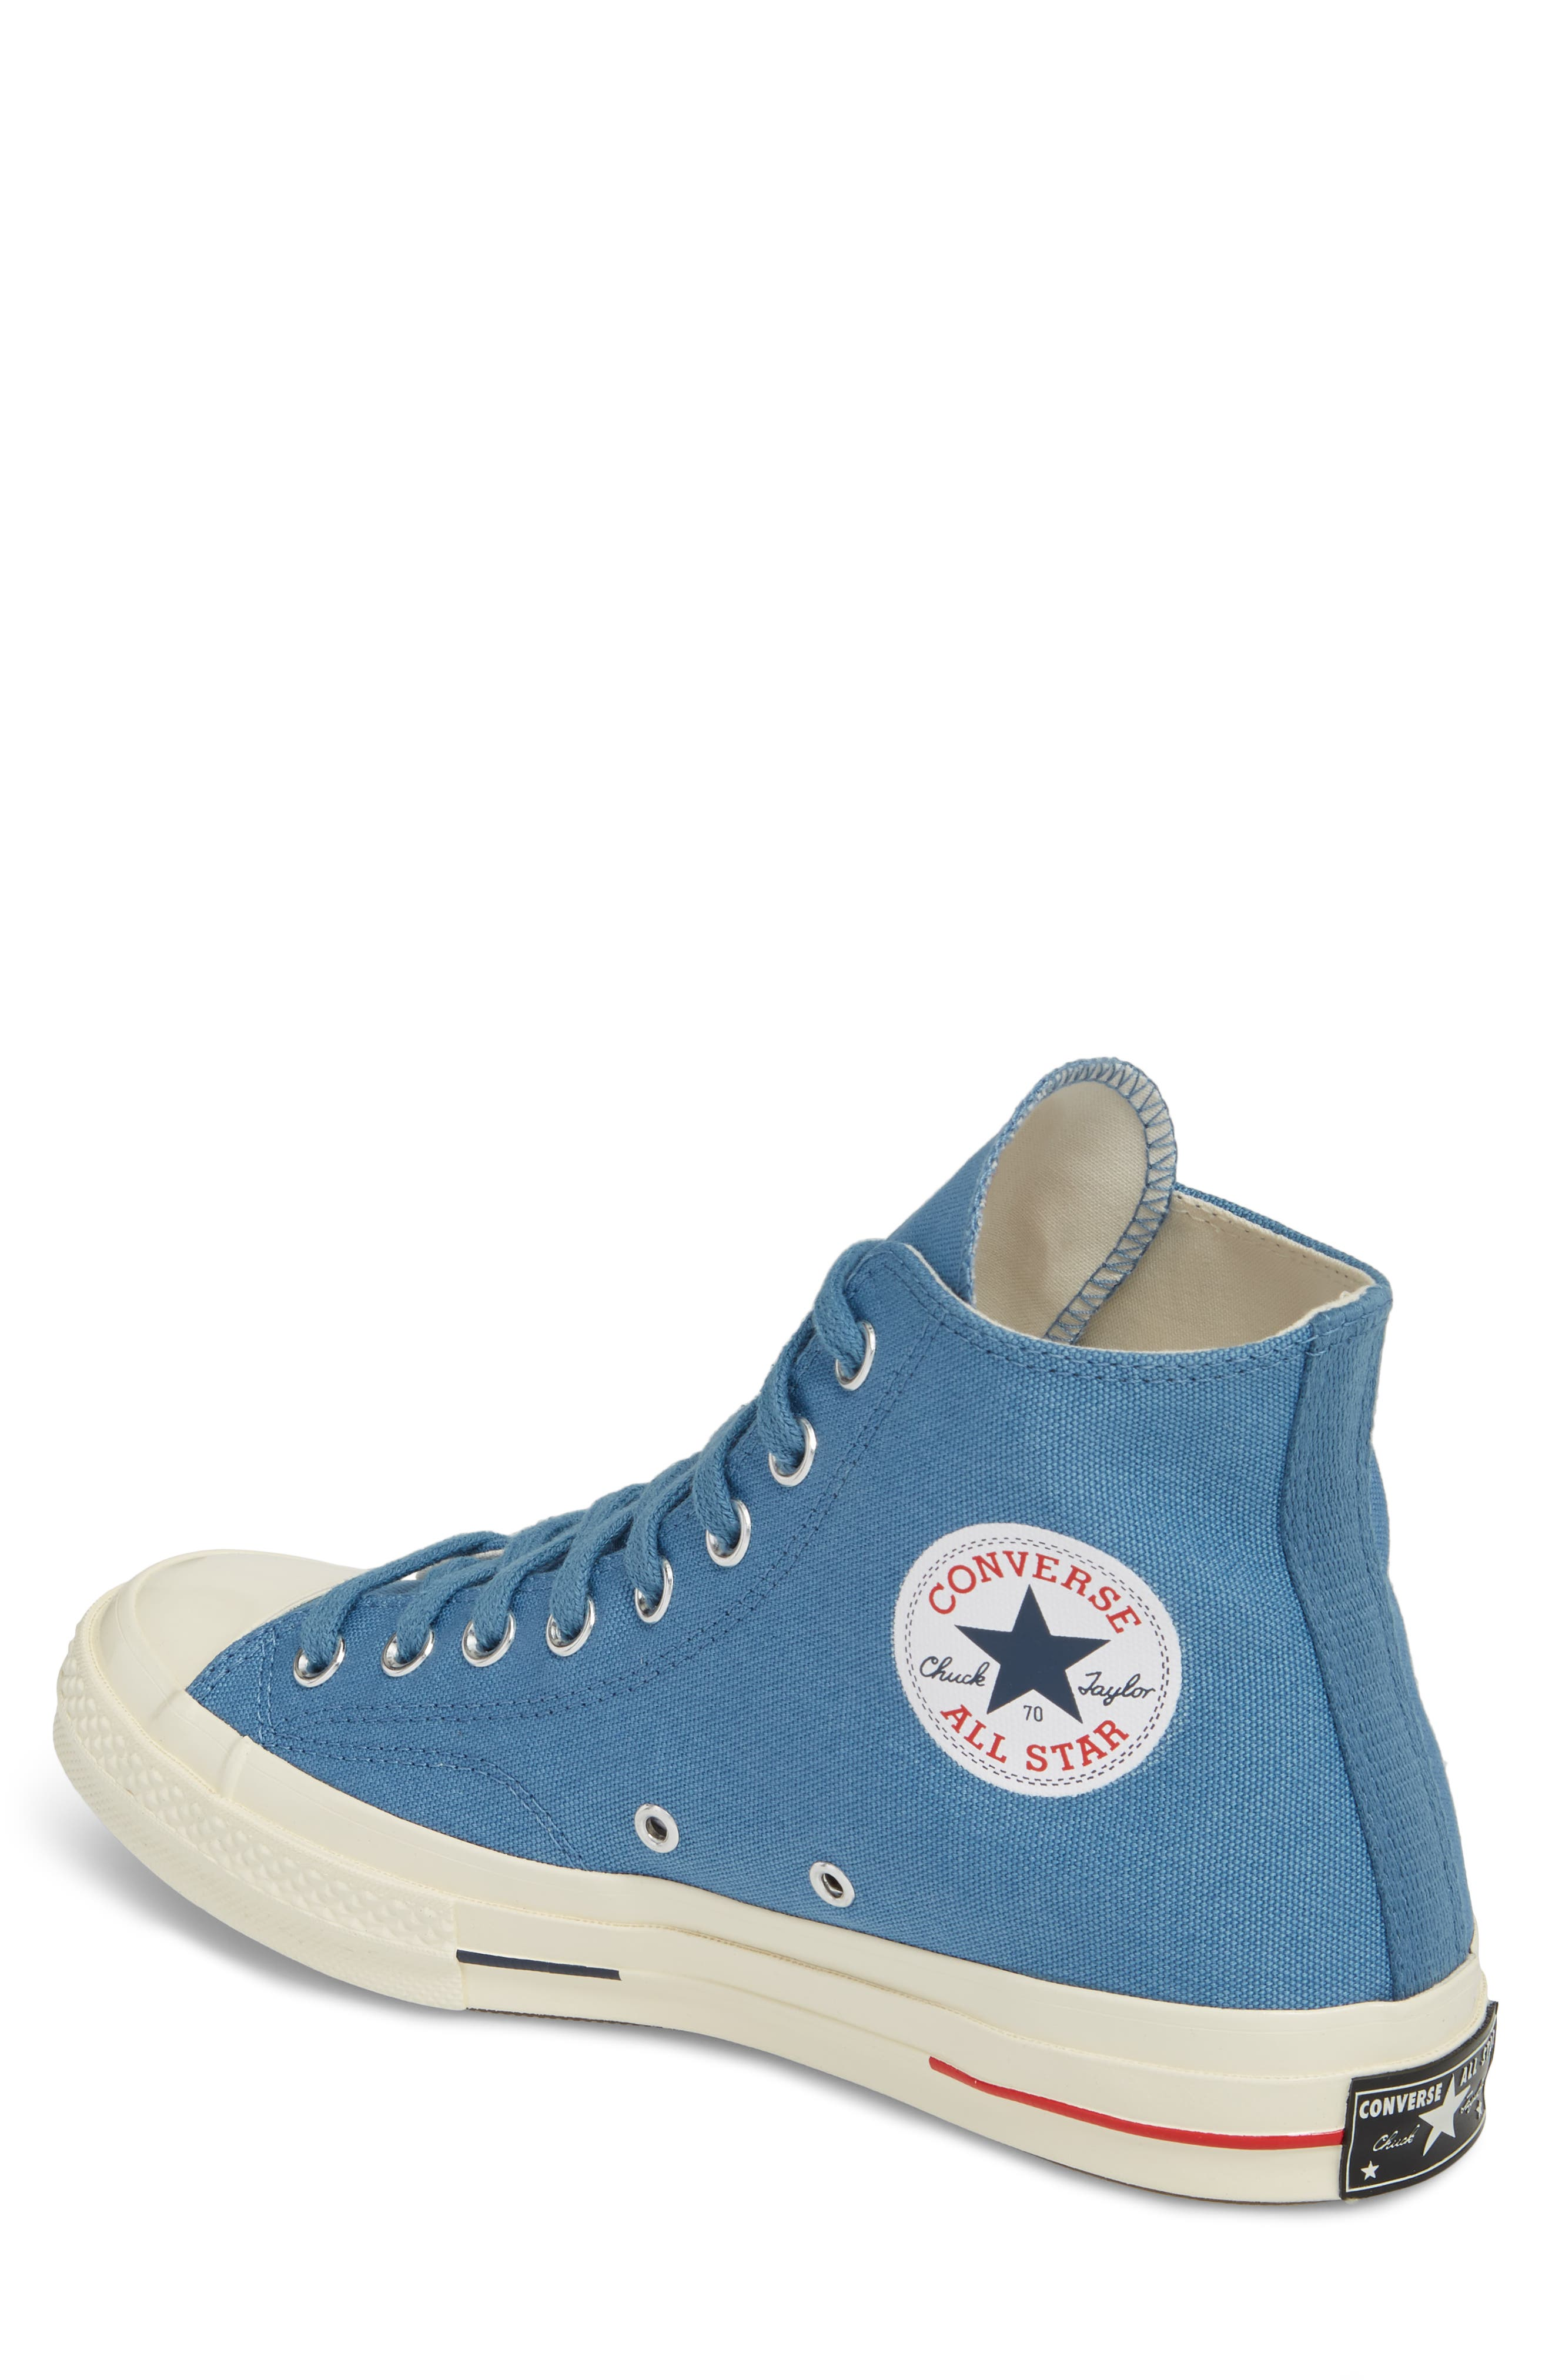 Chuck Taylor<sup>®</sup> All Star<sup>®</sup> '70s Heritage High Top Sneaker,                             Alternate thumbnail 2, color,                             Aegean Storm